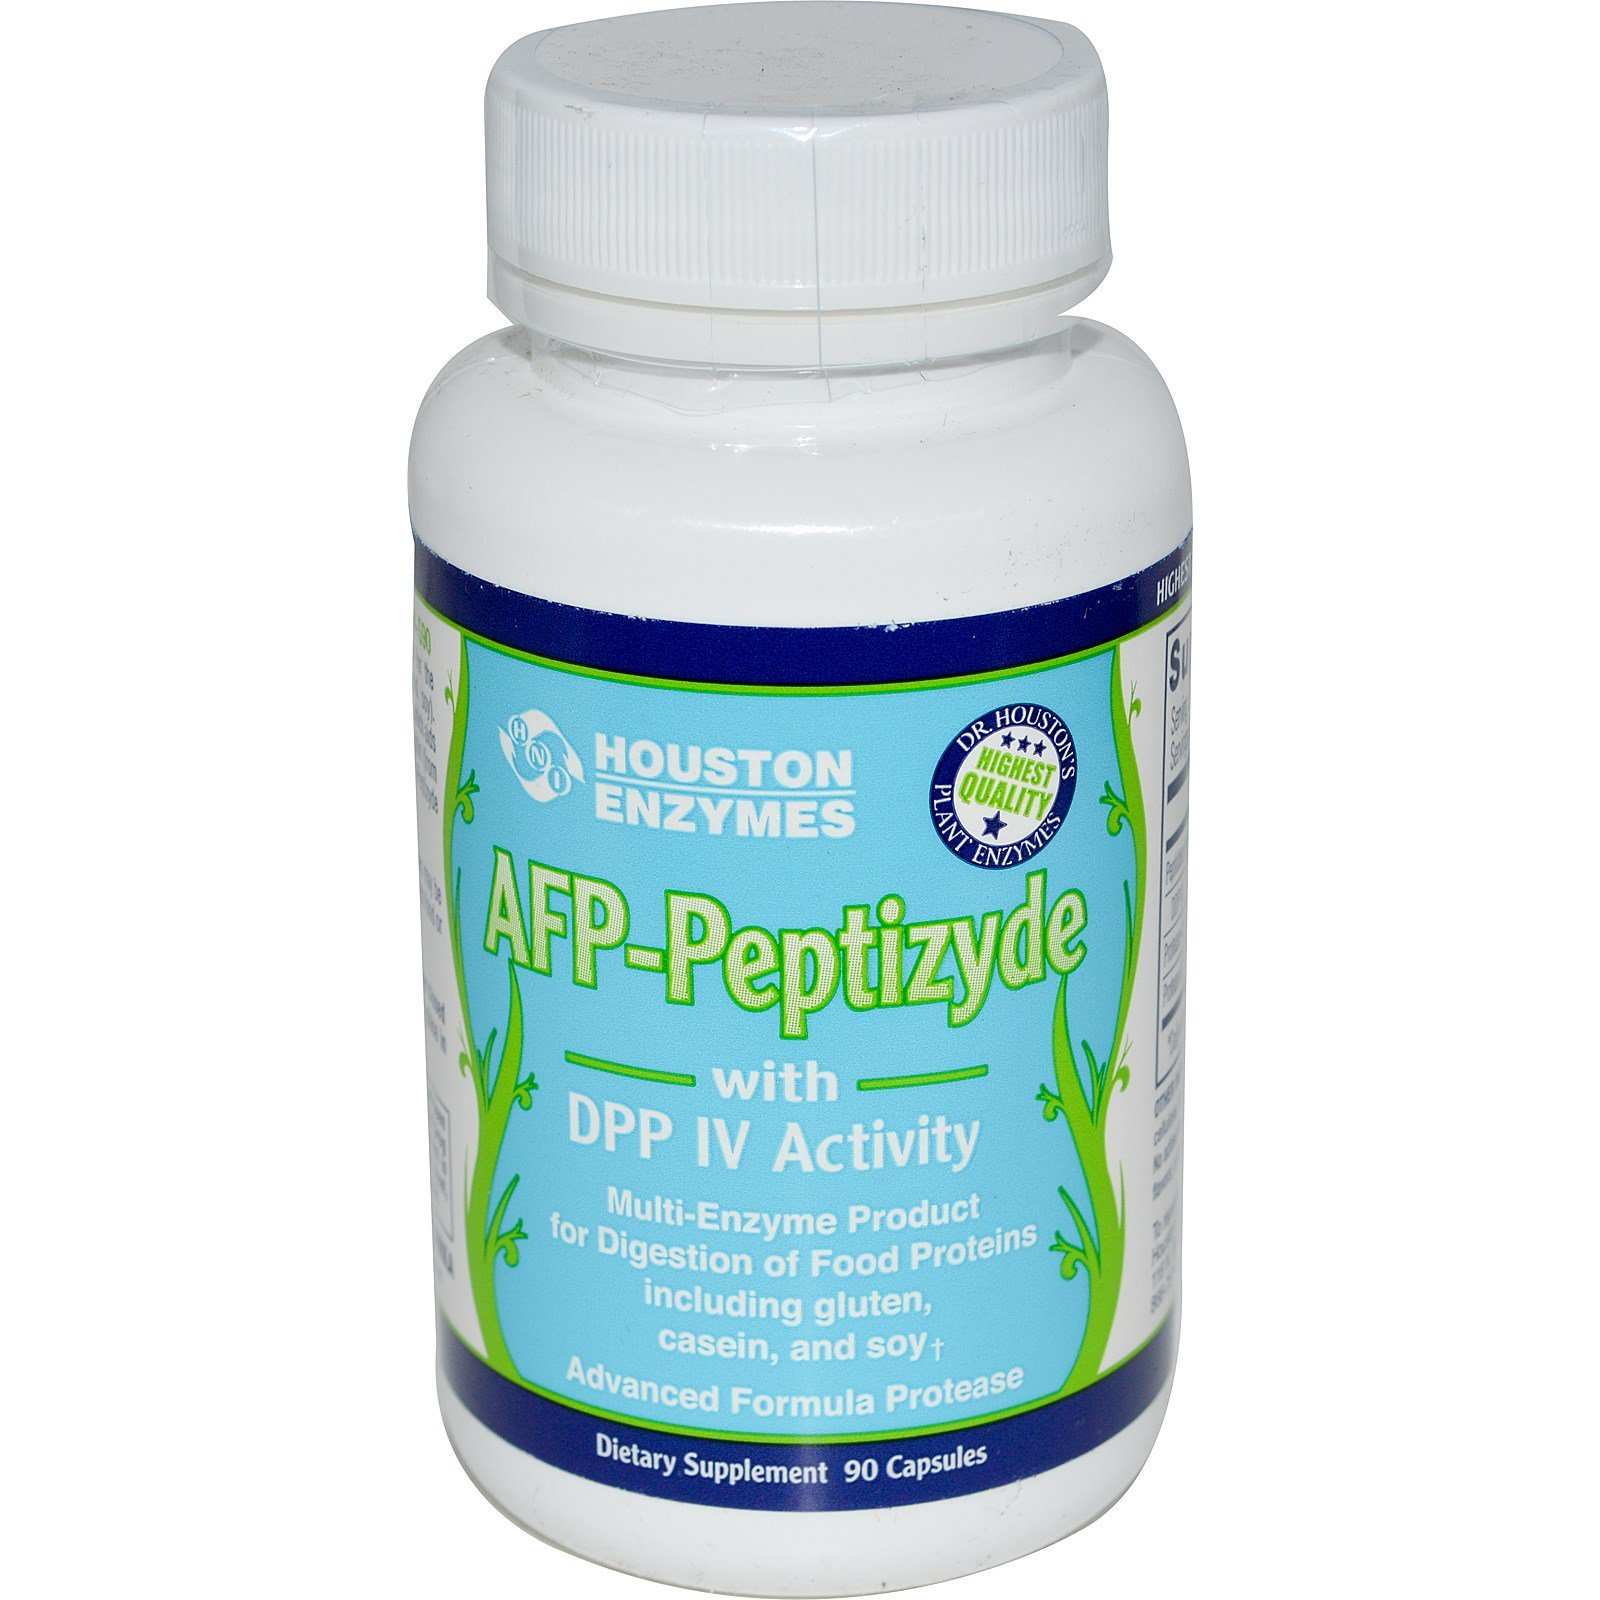 Houston Enzymes AFP-Peptizyde with DPP IV Activity with Cellulose 90 Capsules